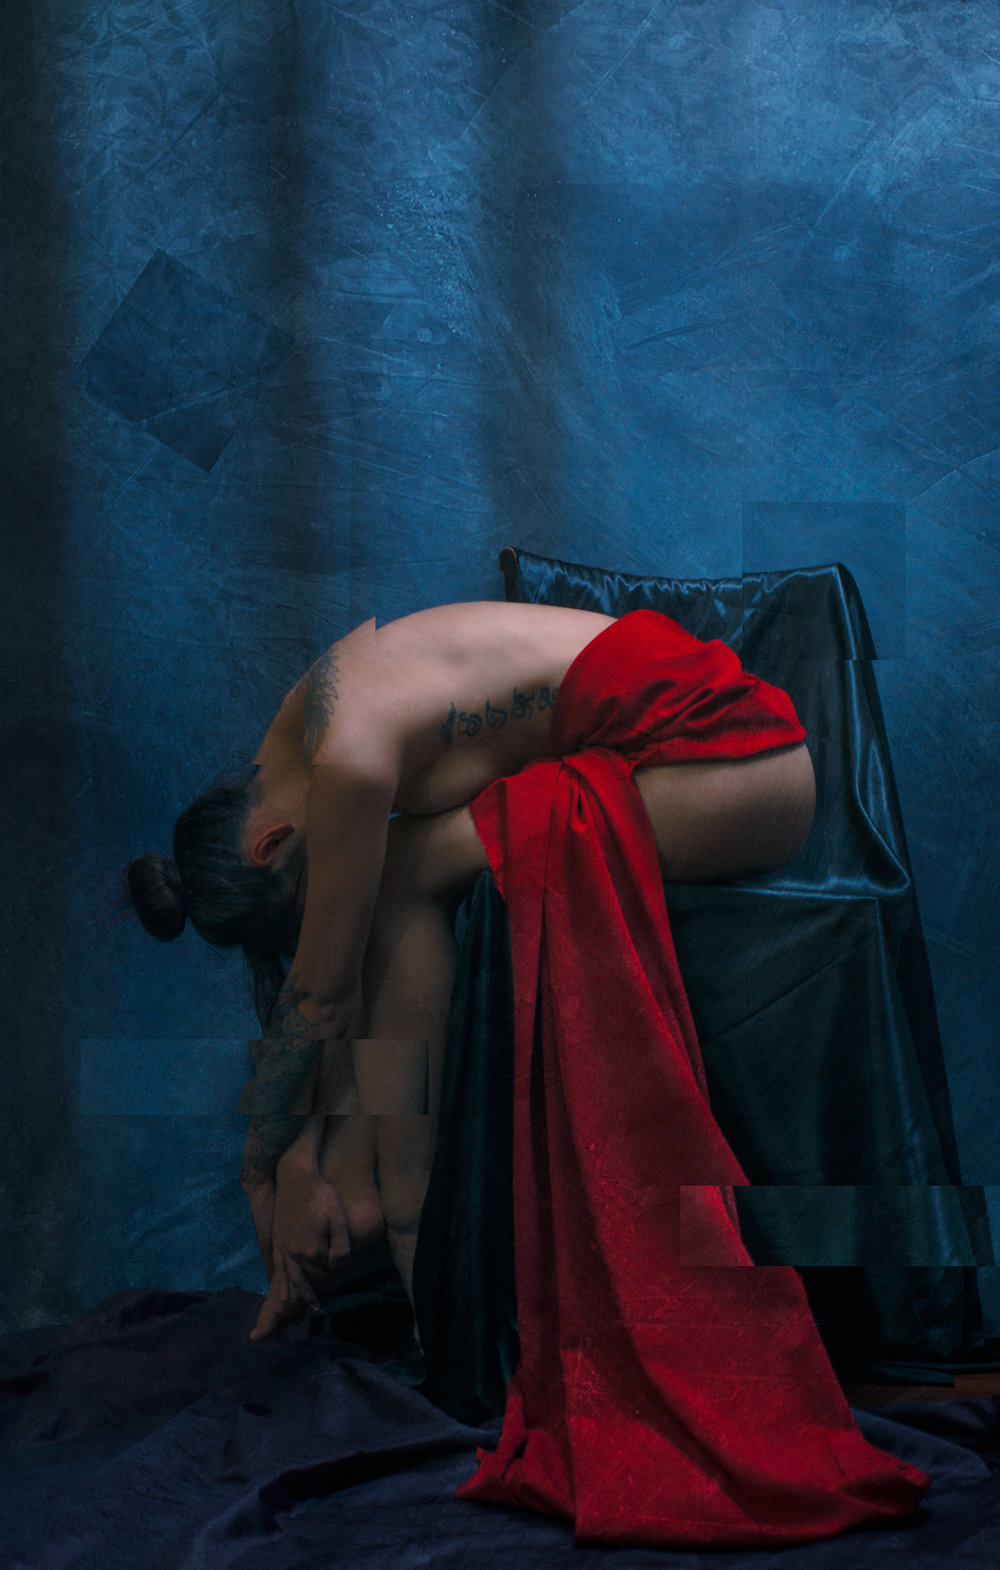 Fine art nude photograph of Angelina by Jason Matias. The model is draped in red cloth on a blue backdrop to create a striking contrast in the image. The photo is overlayed with layers of texture and appears as a painting with abstract cubist elements.